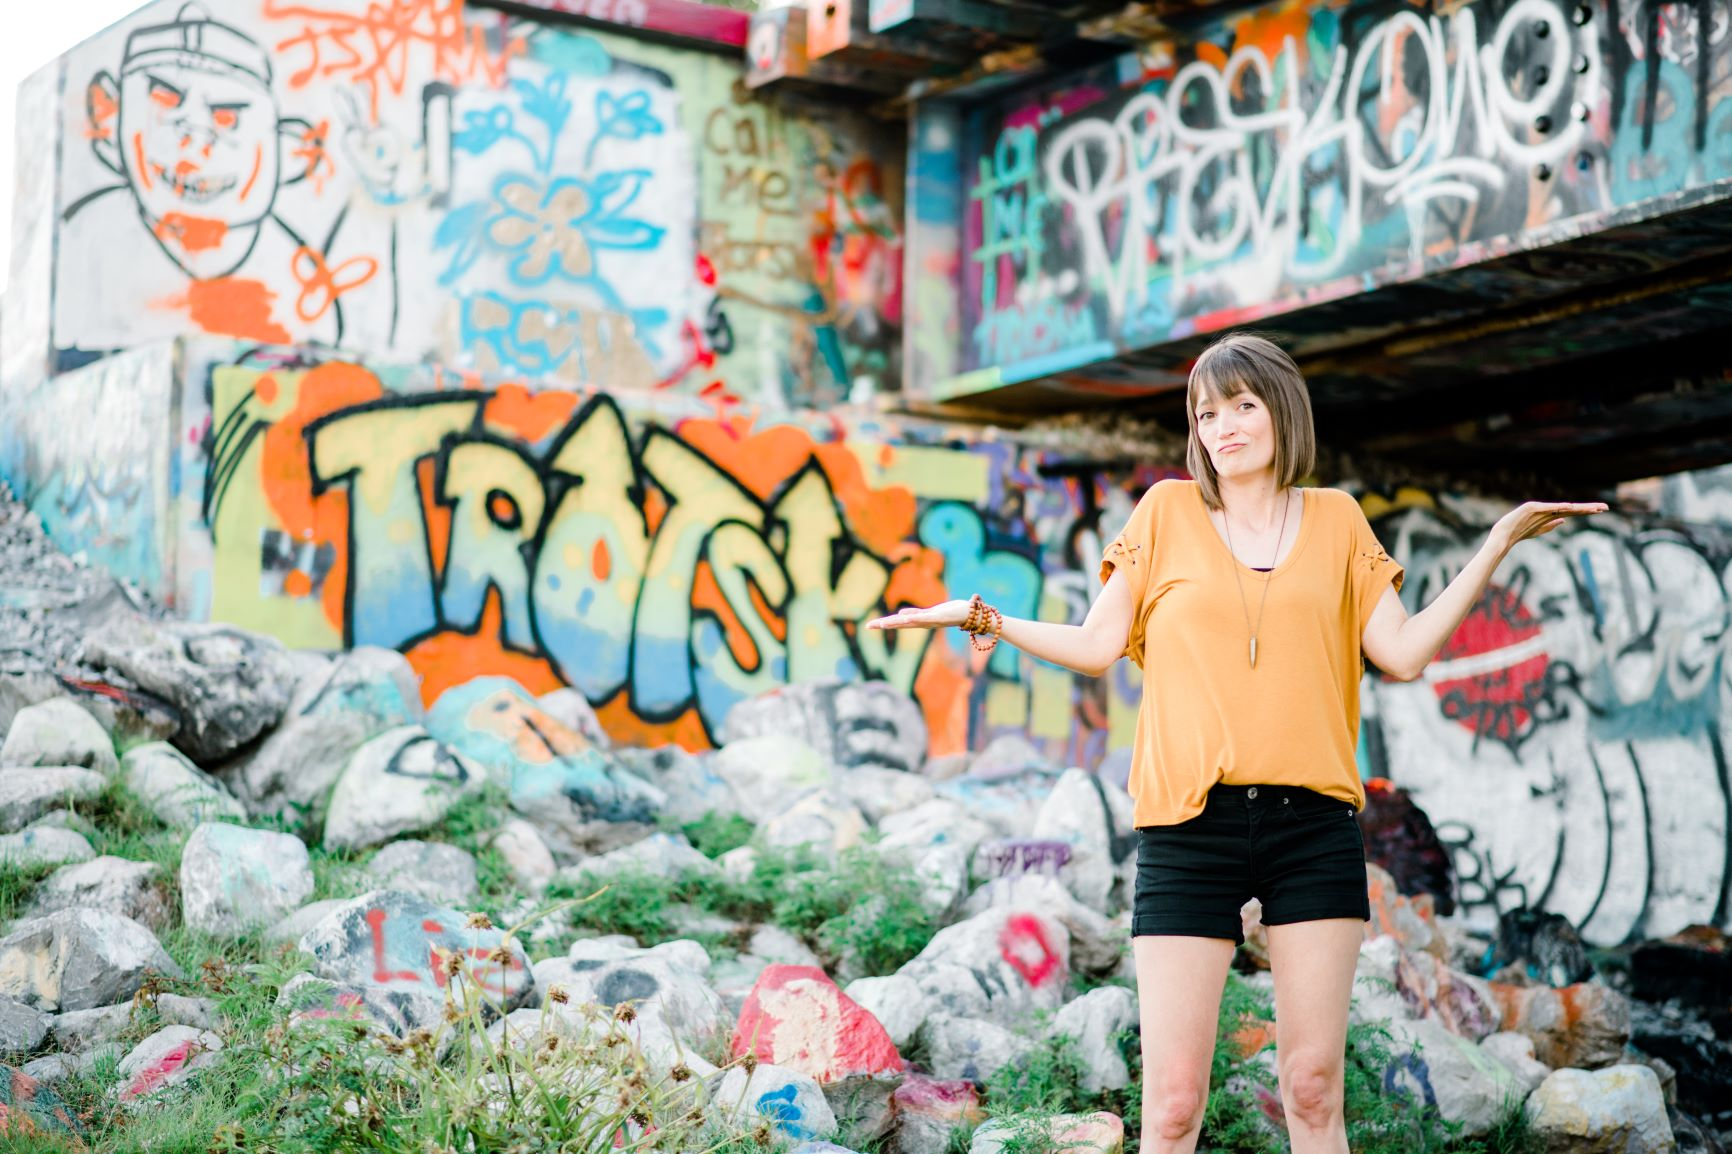 Tara in a yellow shirt and black shorts with arms out looking unsure, with a graffiti background.